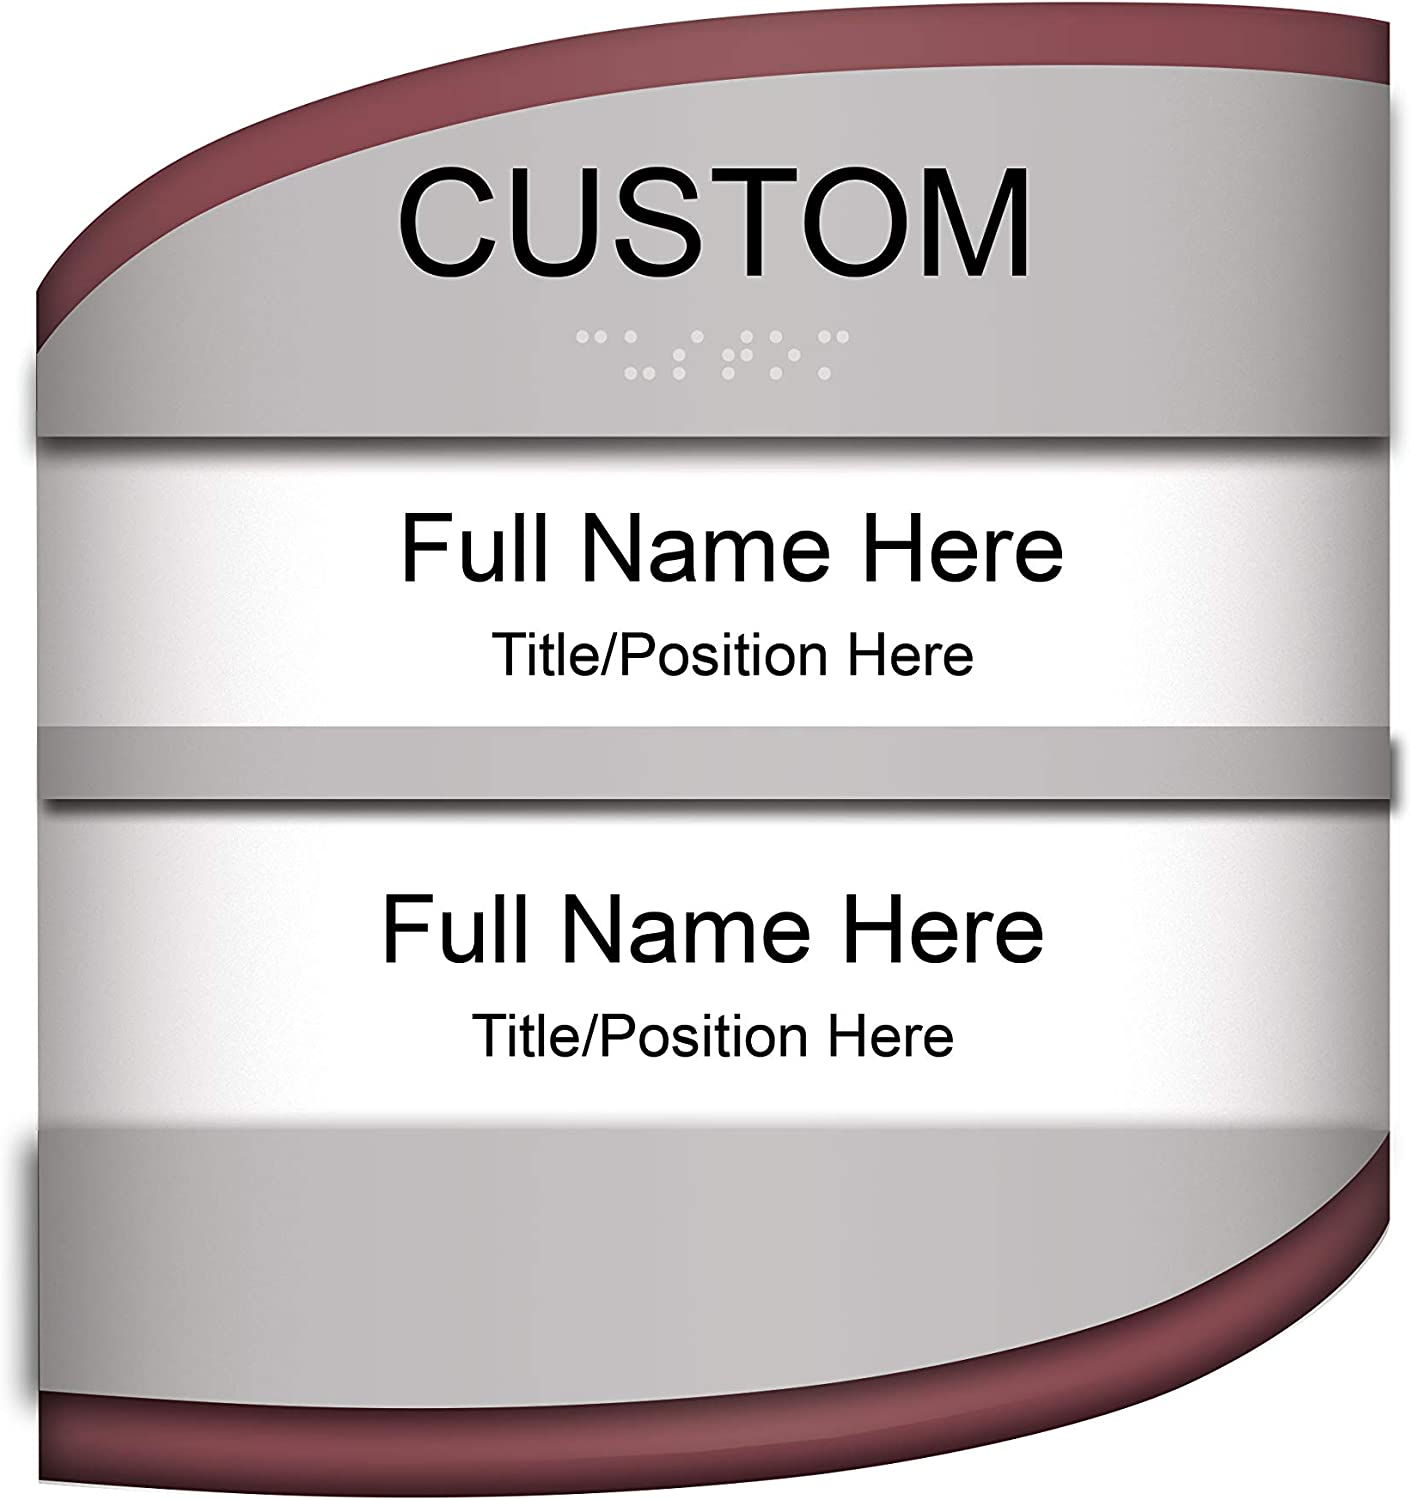 Red /& Black Customizable ADA Compliant Room ID with Changeable Paper Inserts Sign 8x8